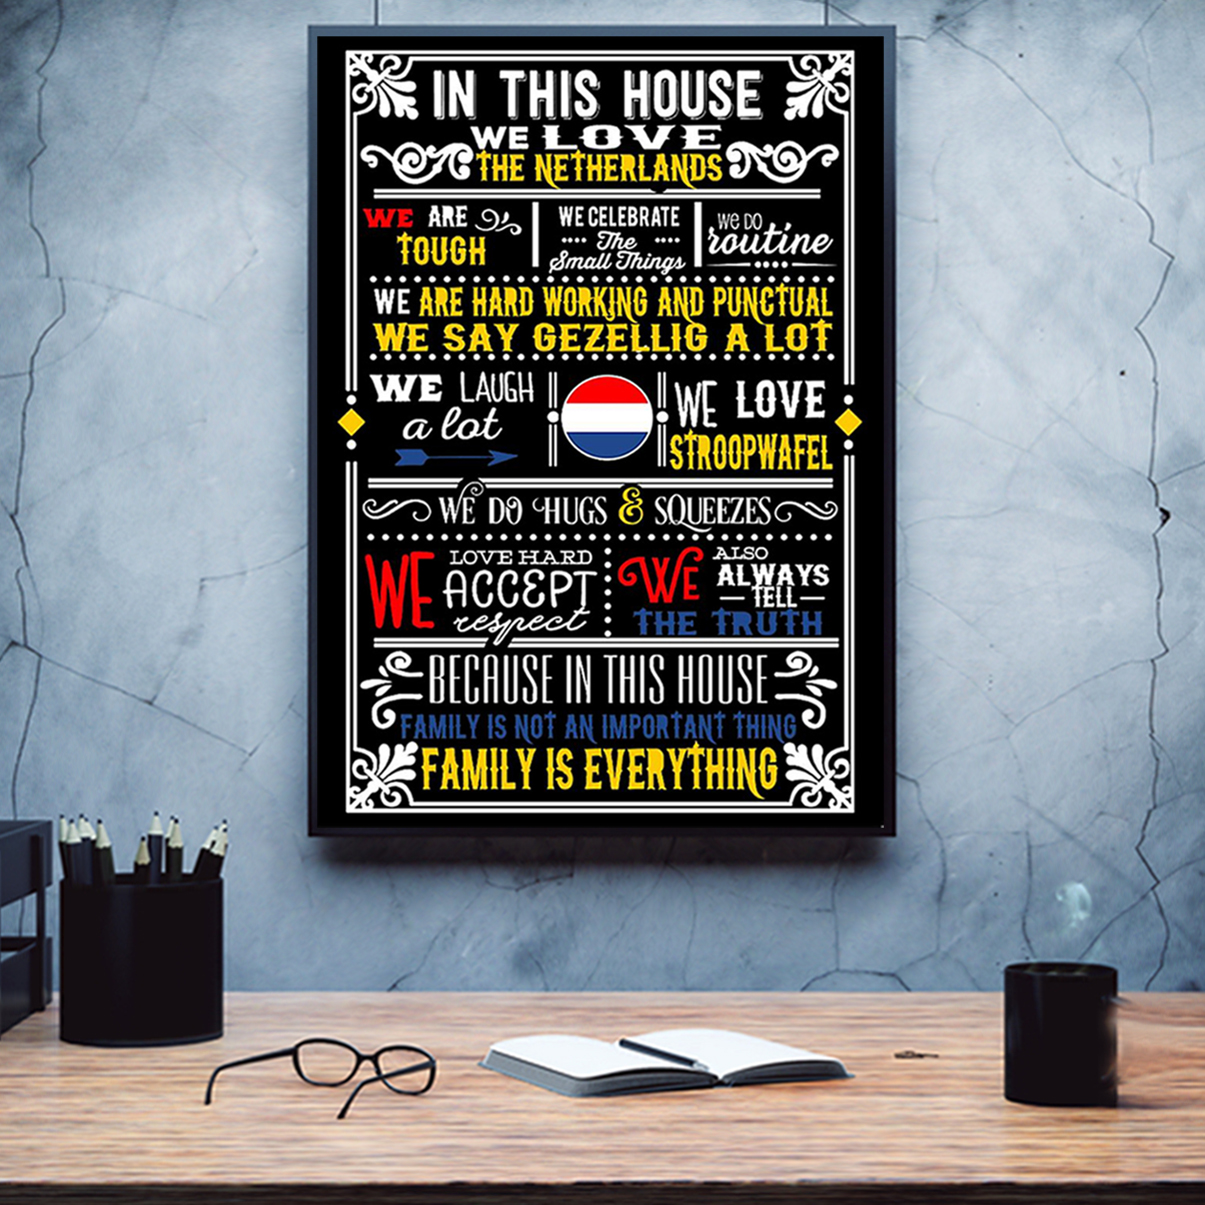 In this house we love netherlands poster A1